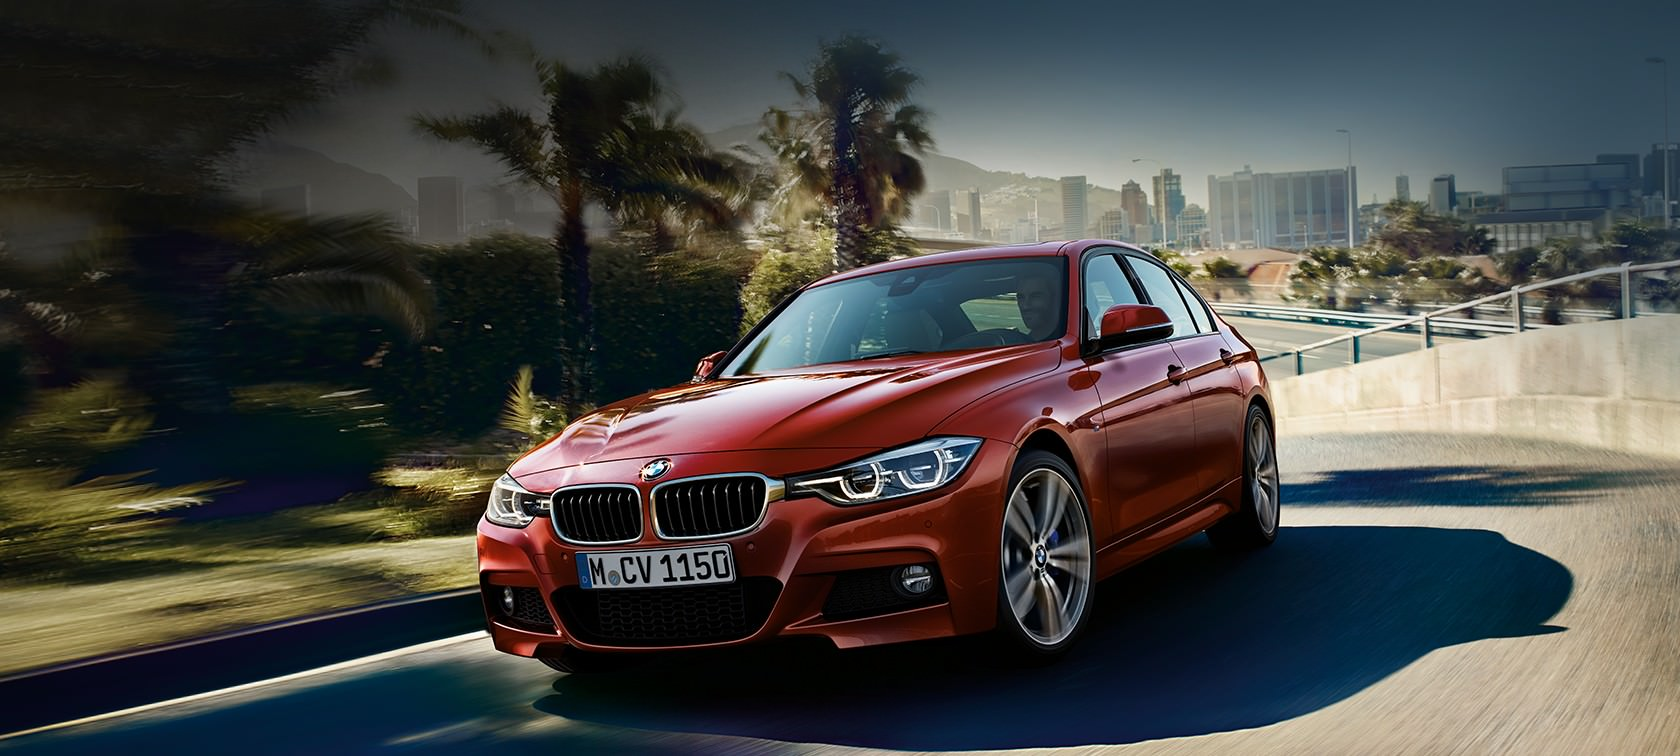 Red BMW Car Background